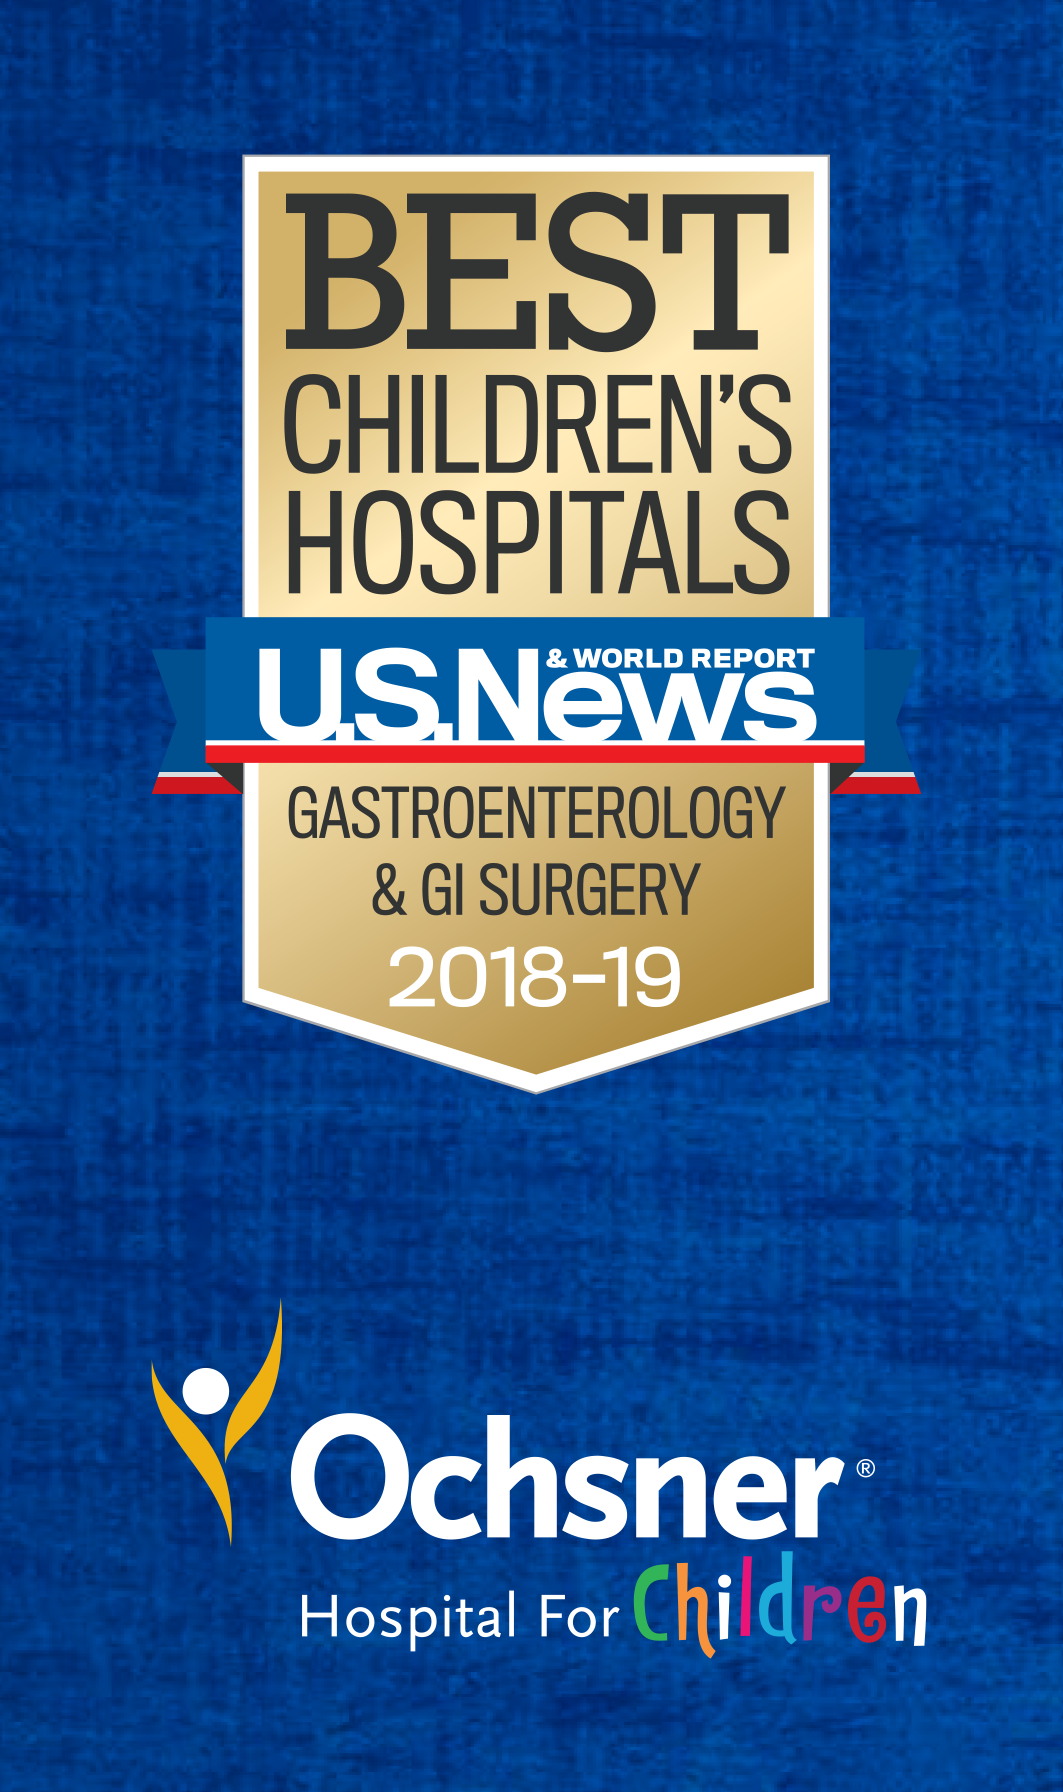 efc9582acc0a Ochsner Hospital for Children s flagship facility is located in New  Orleans